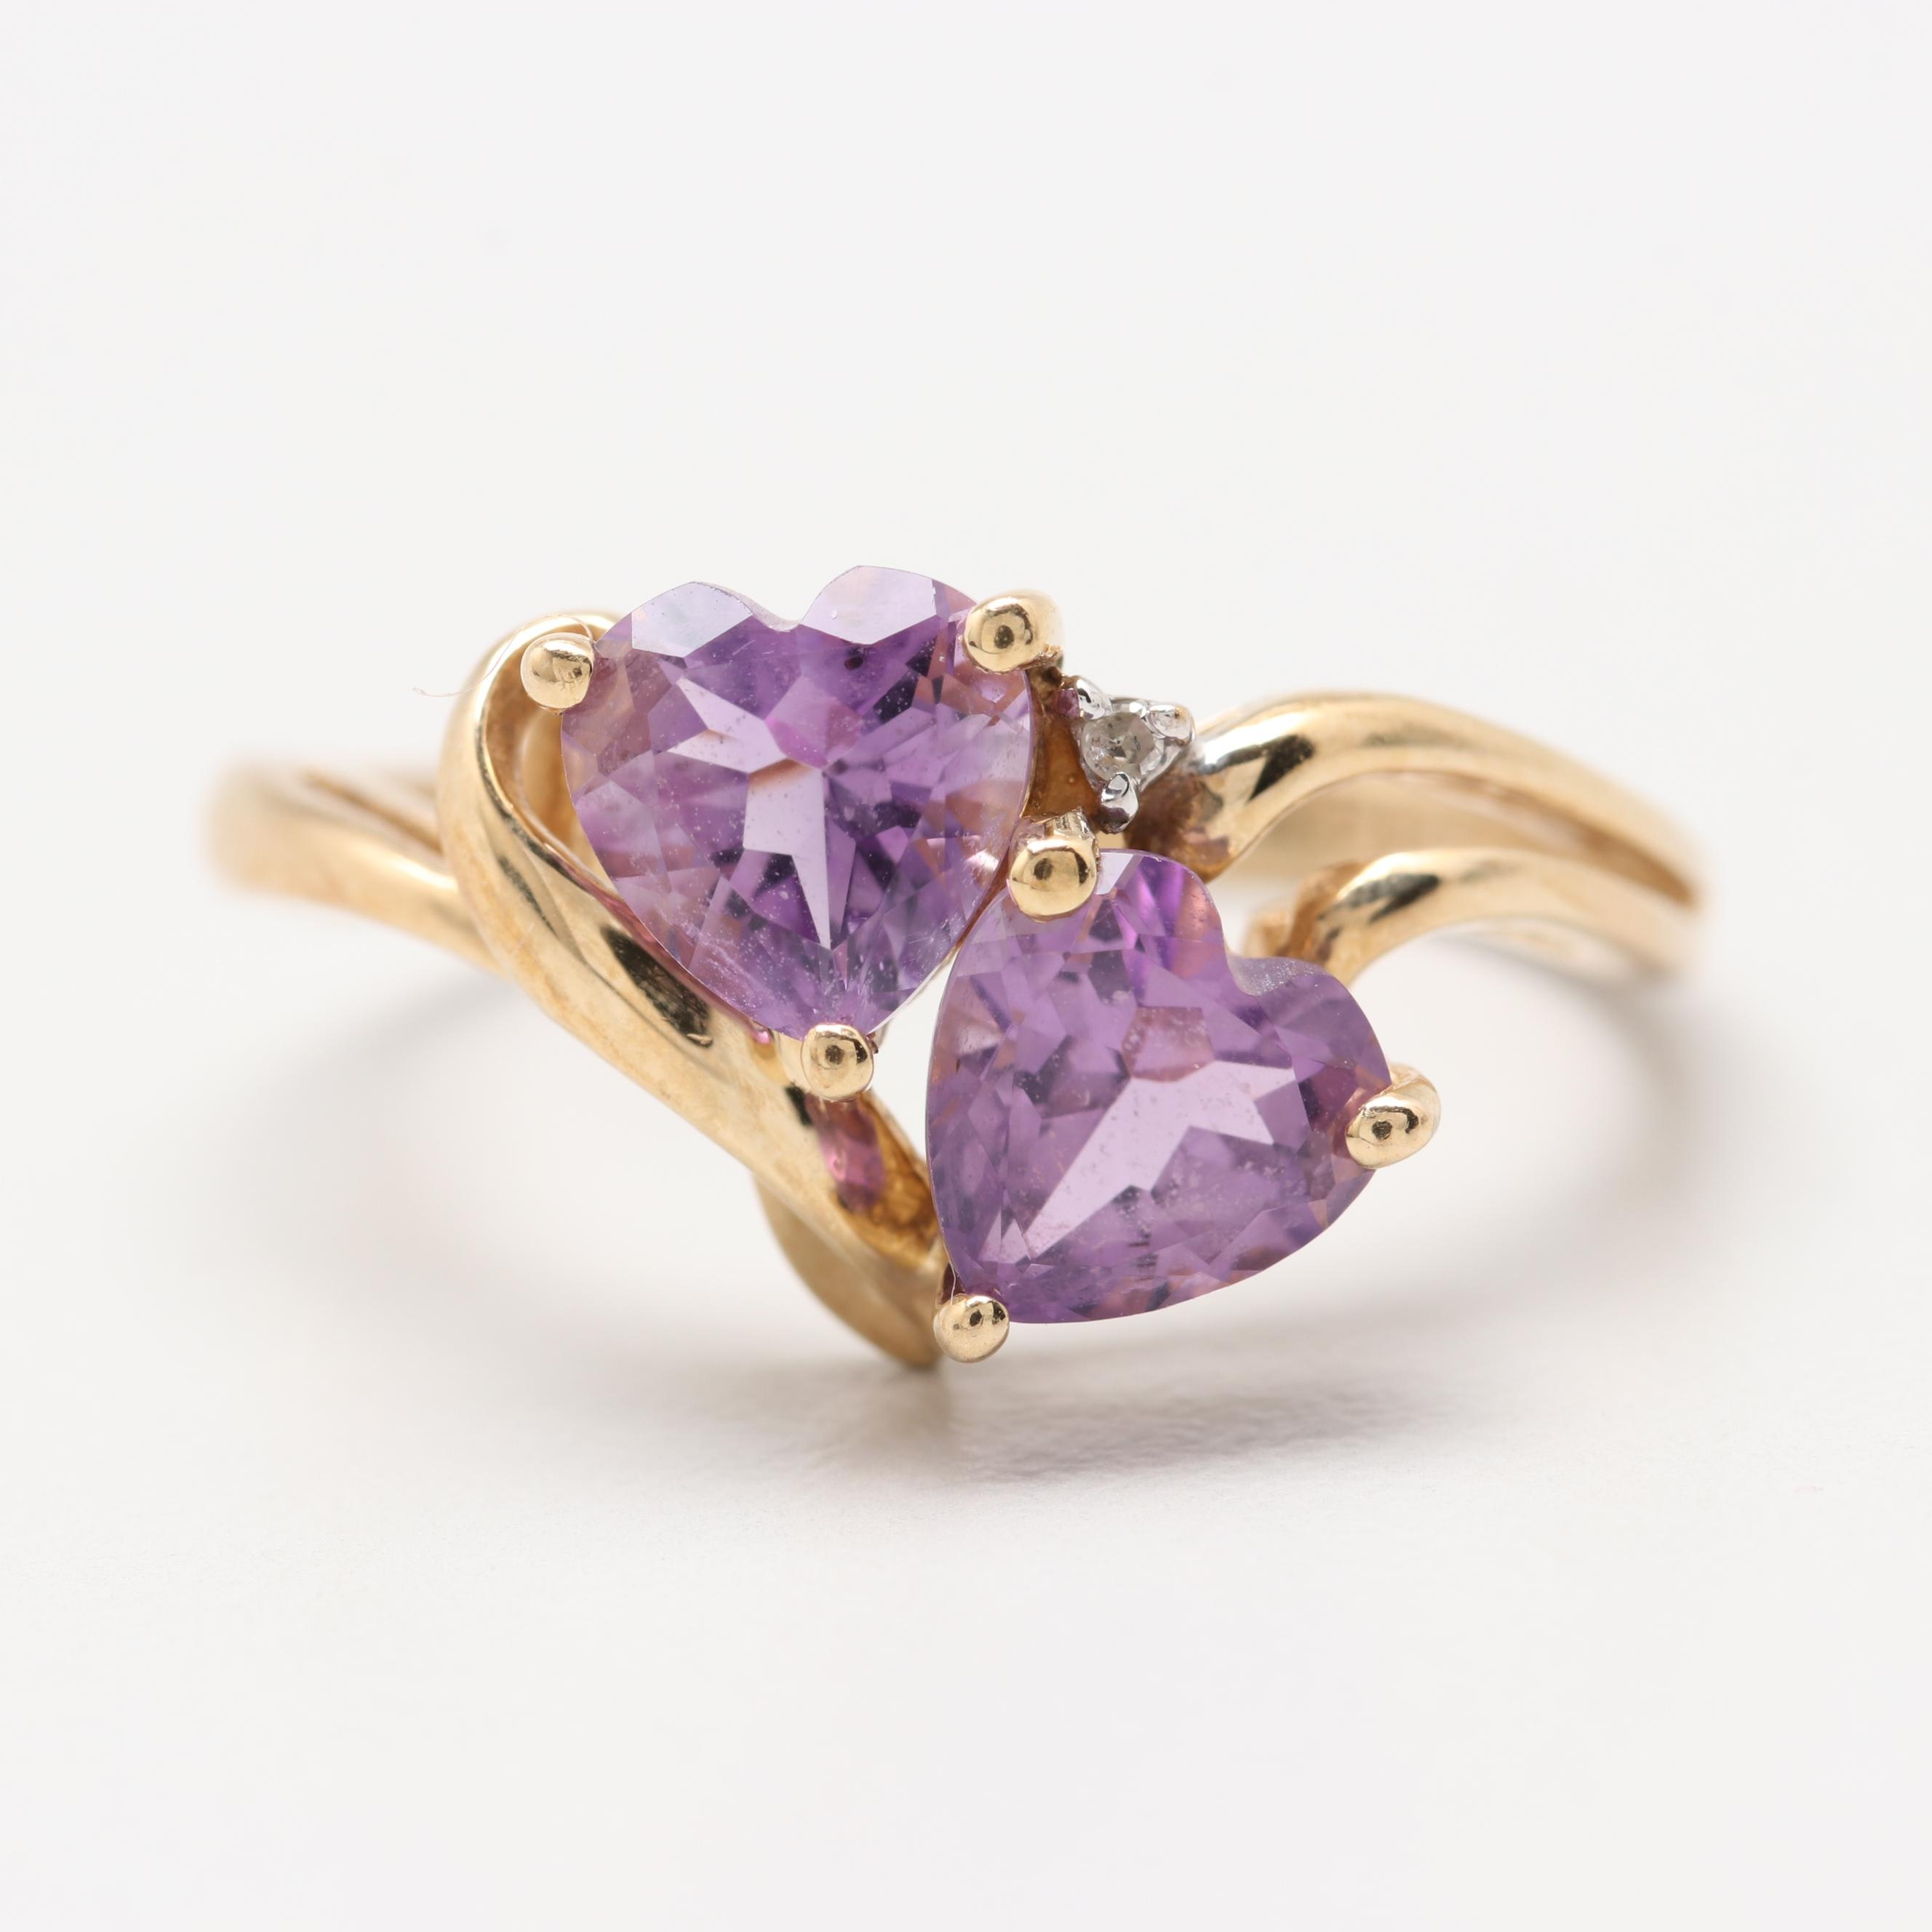 10K Yellow Gold Amethyst with Diamond Ring